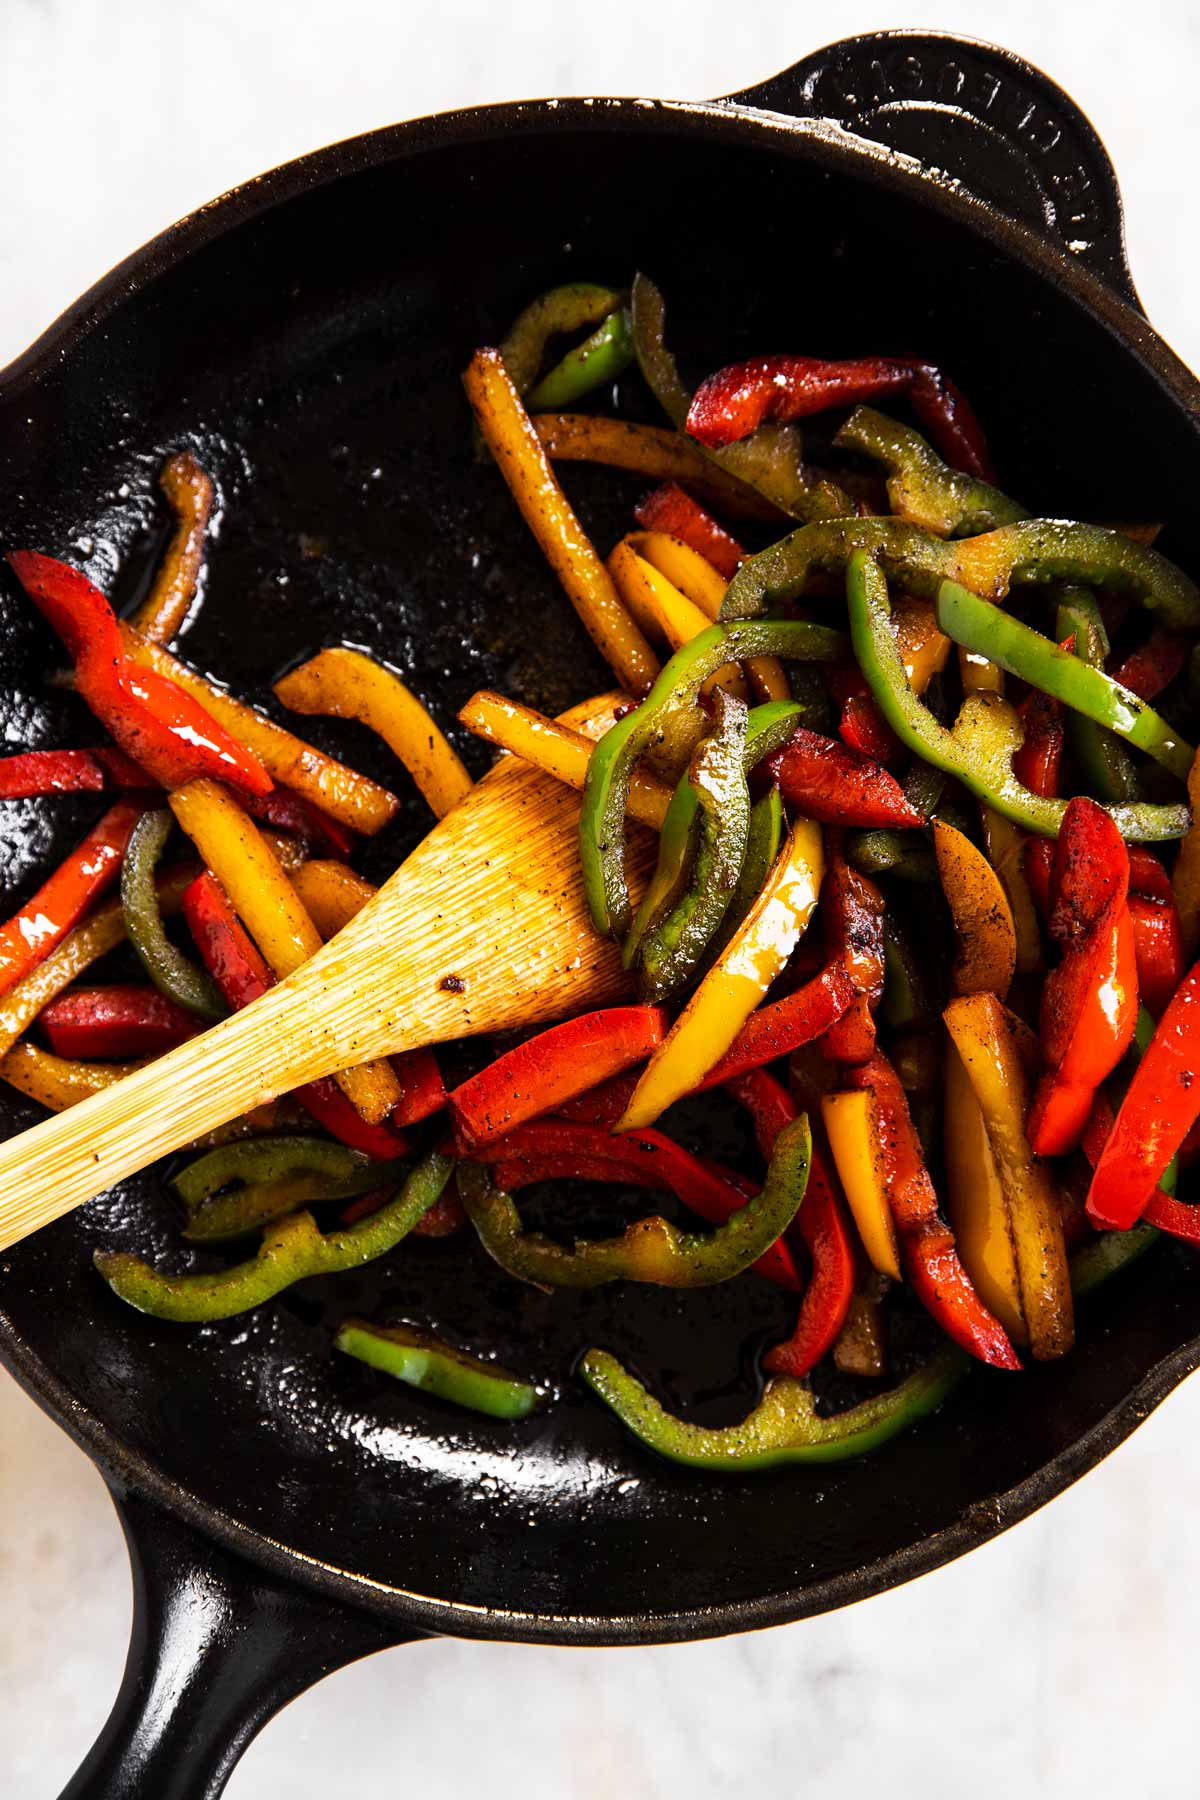 cooked bell peppers in black cast iron skillet with wooden spoon